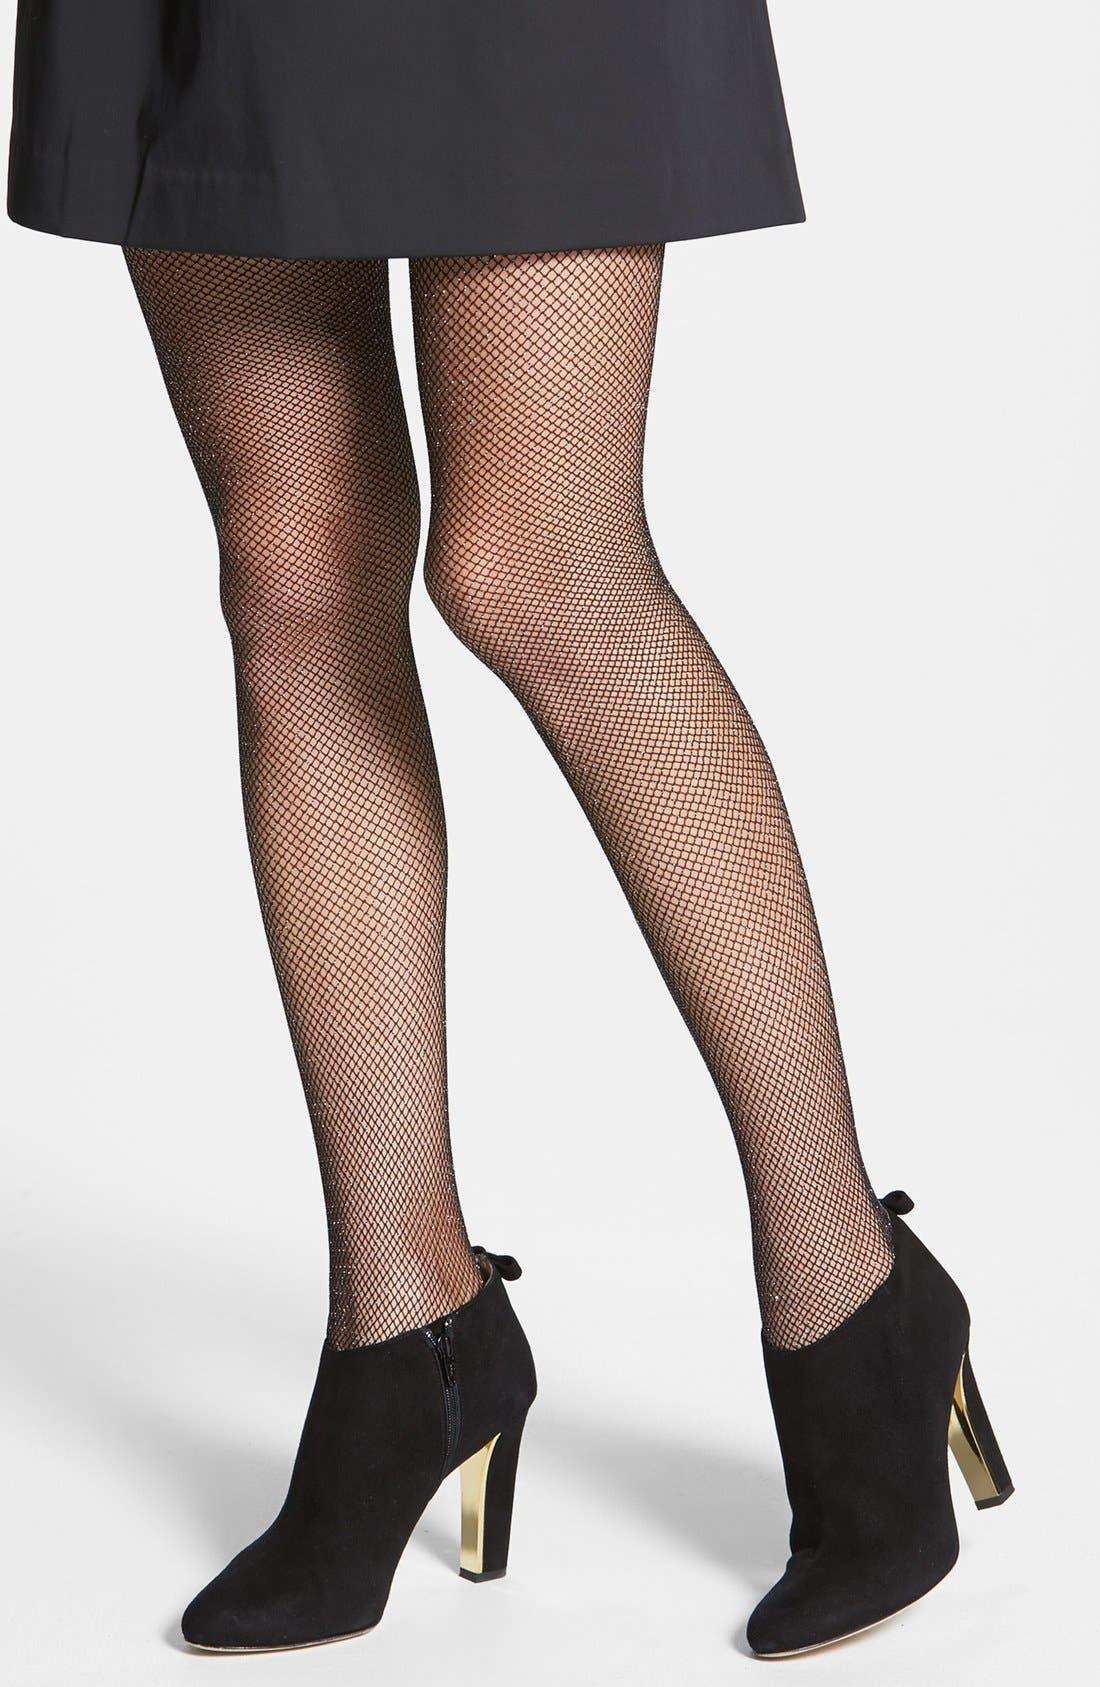 Alternate Image 1 Selected - kate spade new york 'sparkle' fishnet stockings